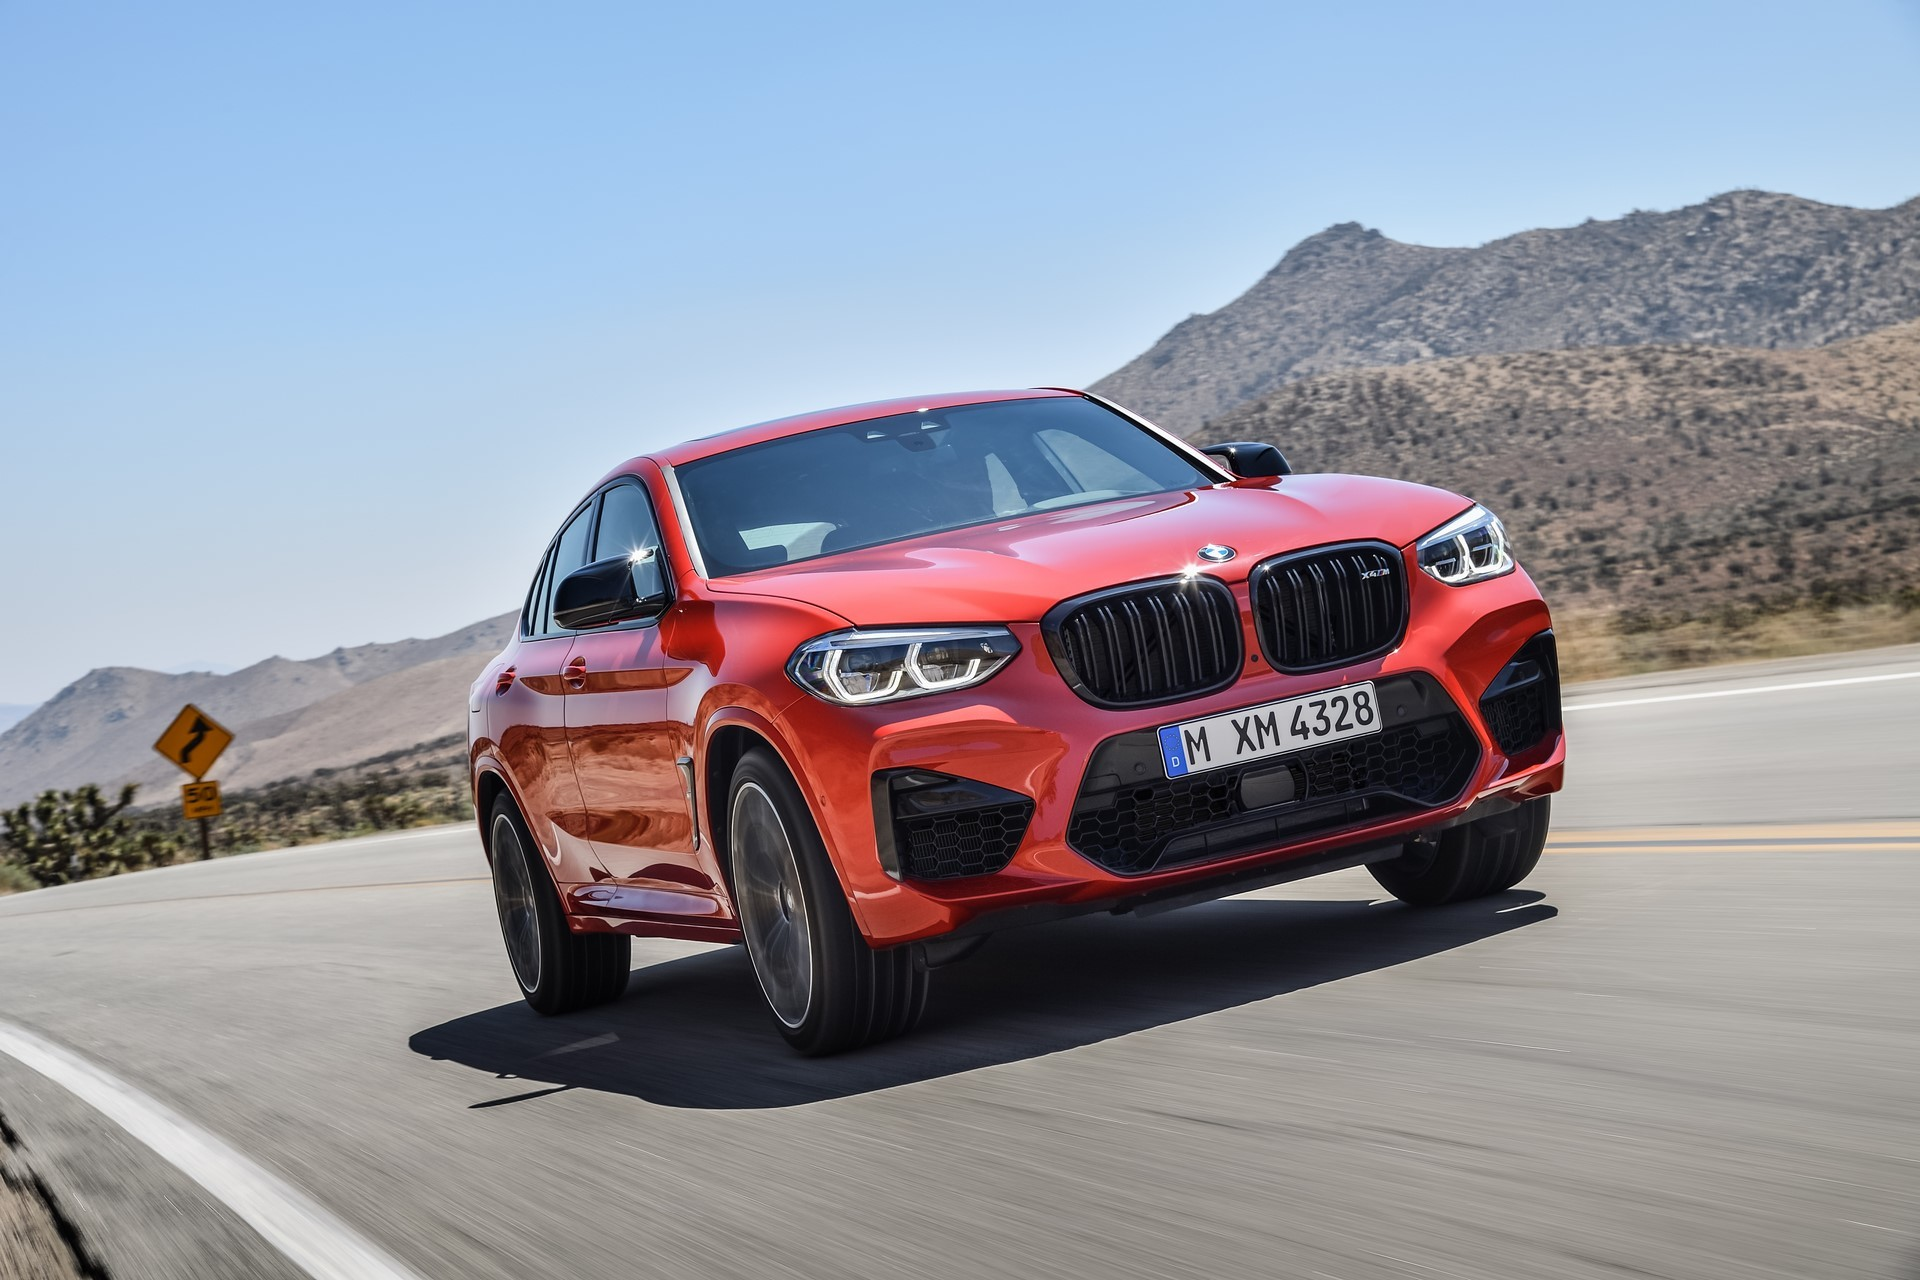 BMW X3 M and X4 M 2019 (85)